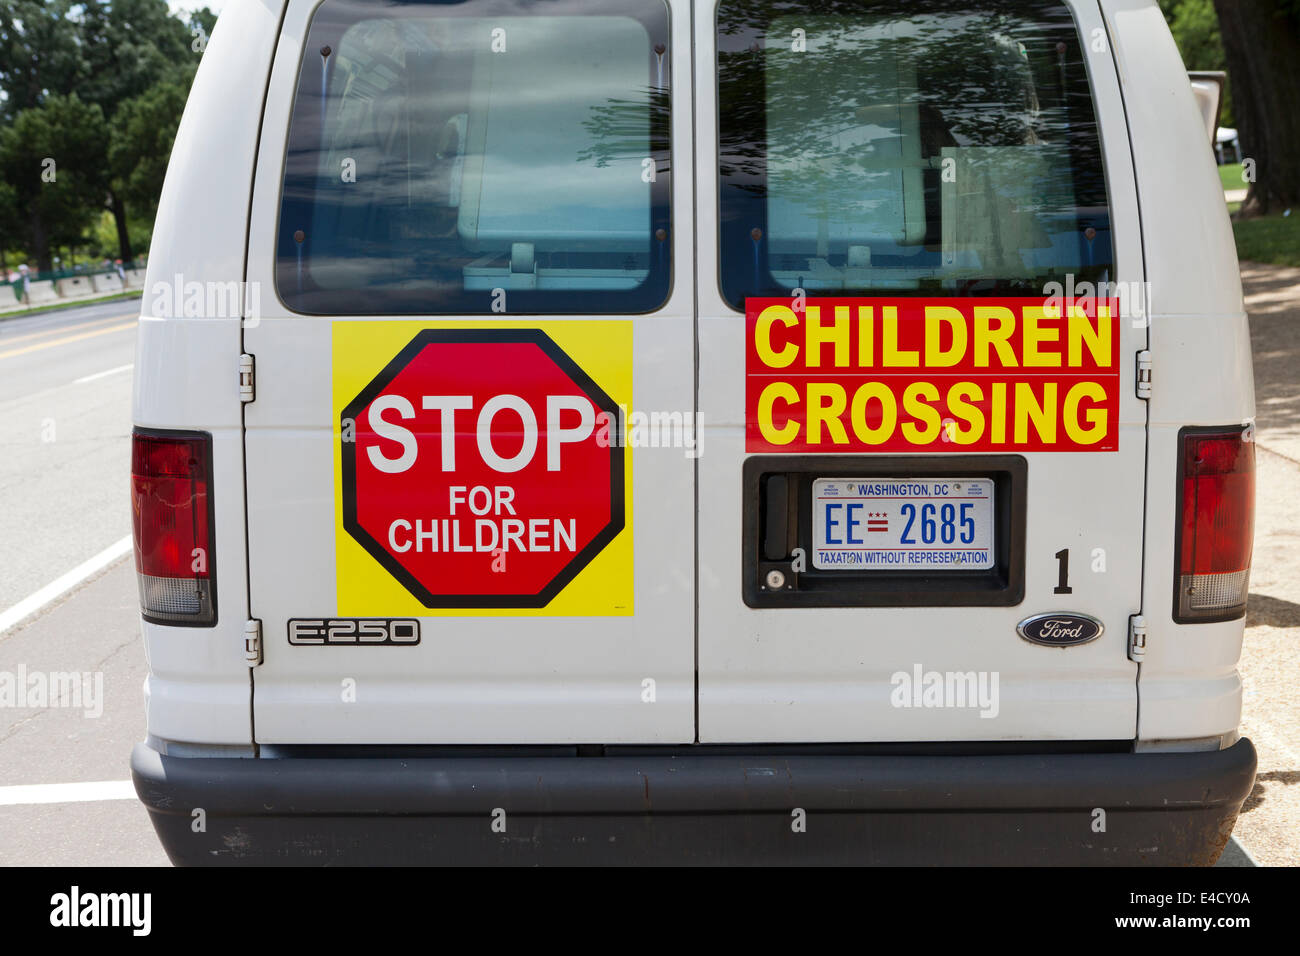 Children crossing warning signs on back of ice cream truck ...